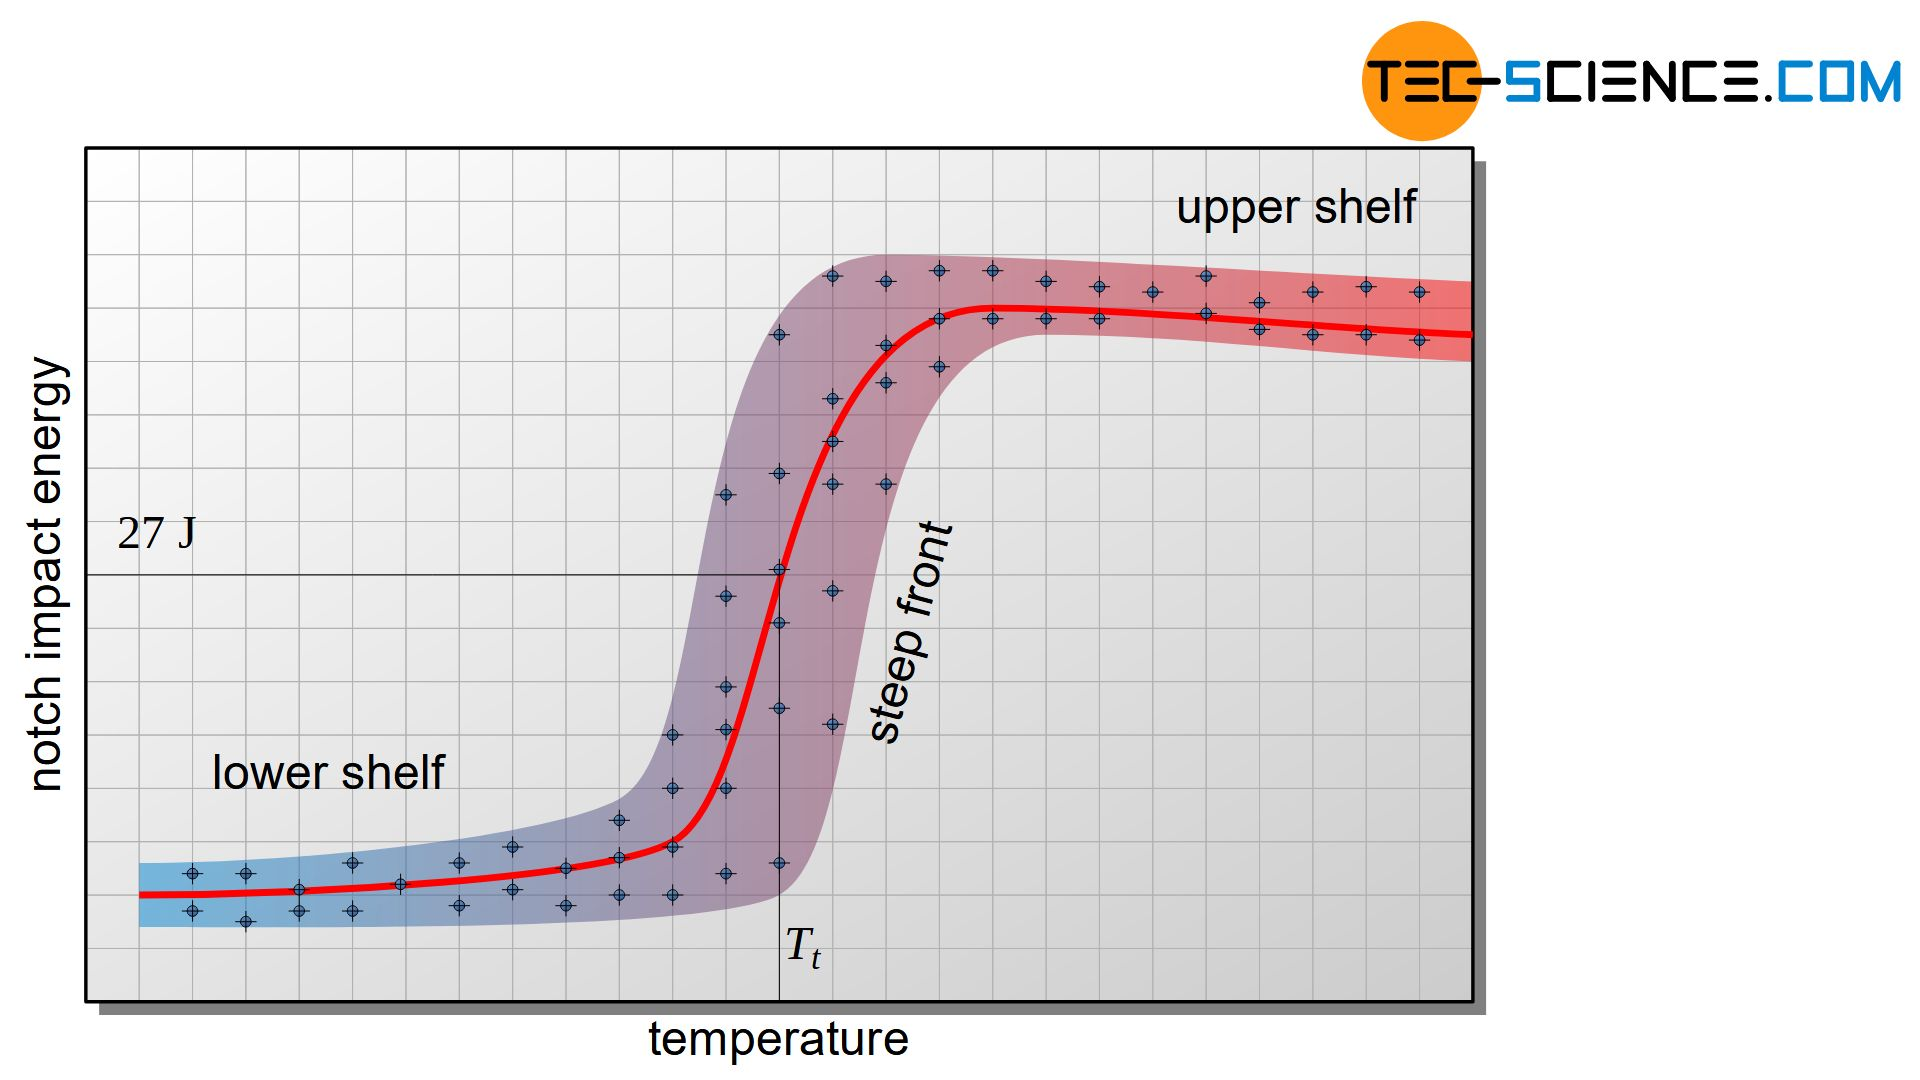 Notch impact energy as a function of temperature